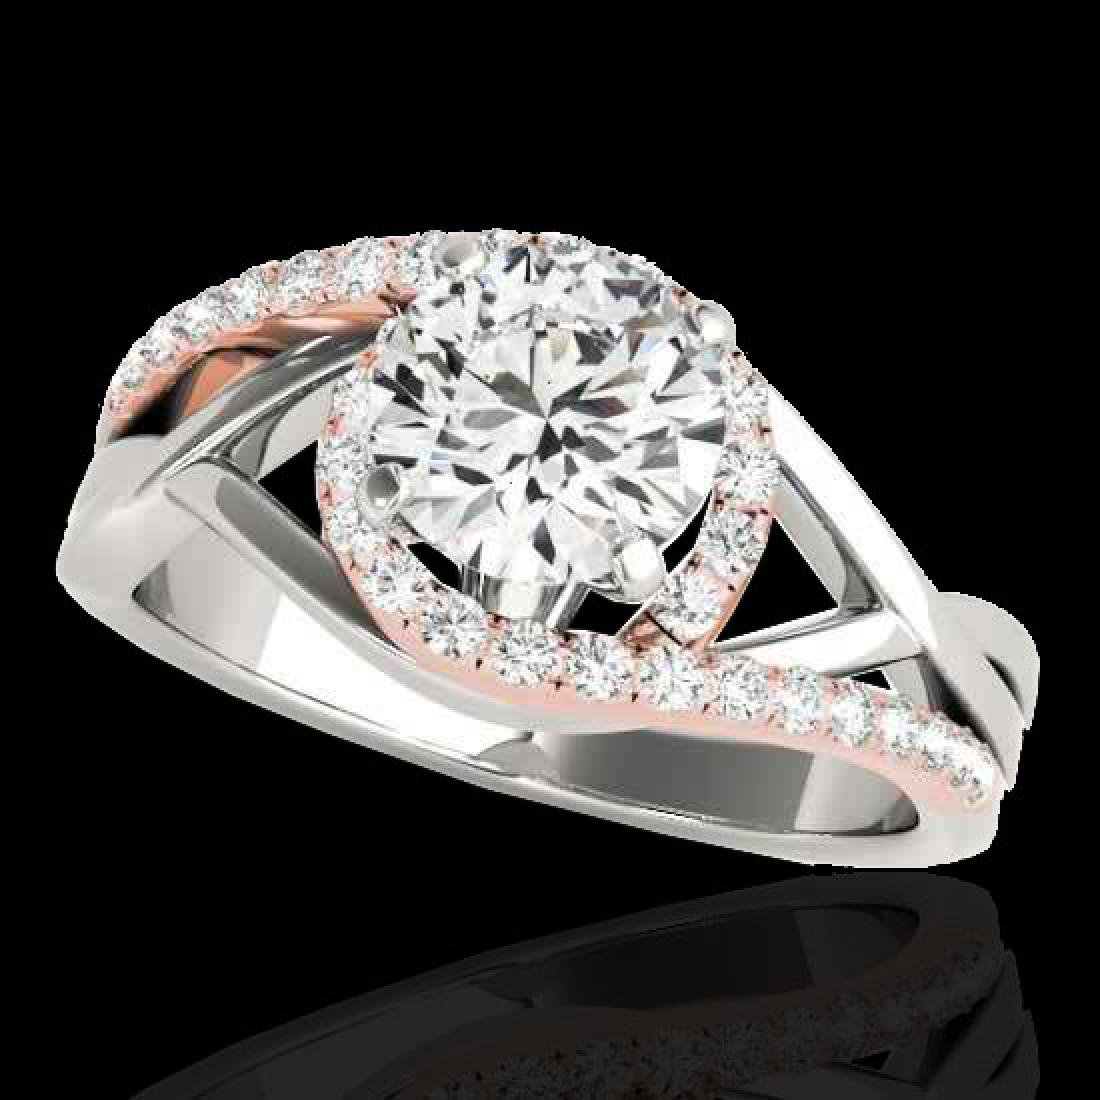 1.3 CTW H-SI/I Certified Diamond Bypass Solitaire Ring